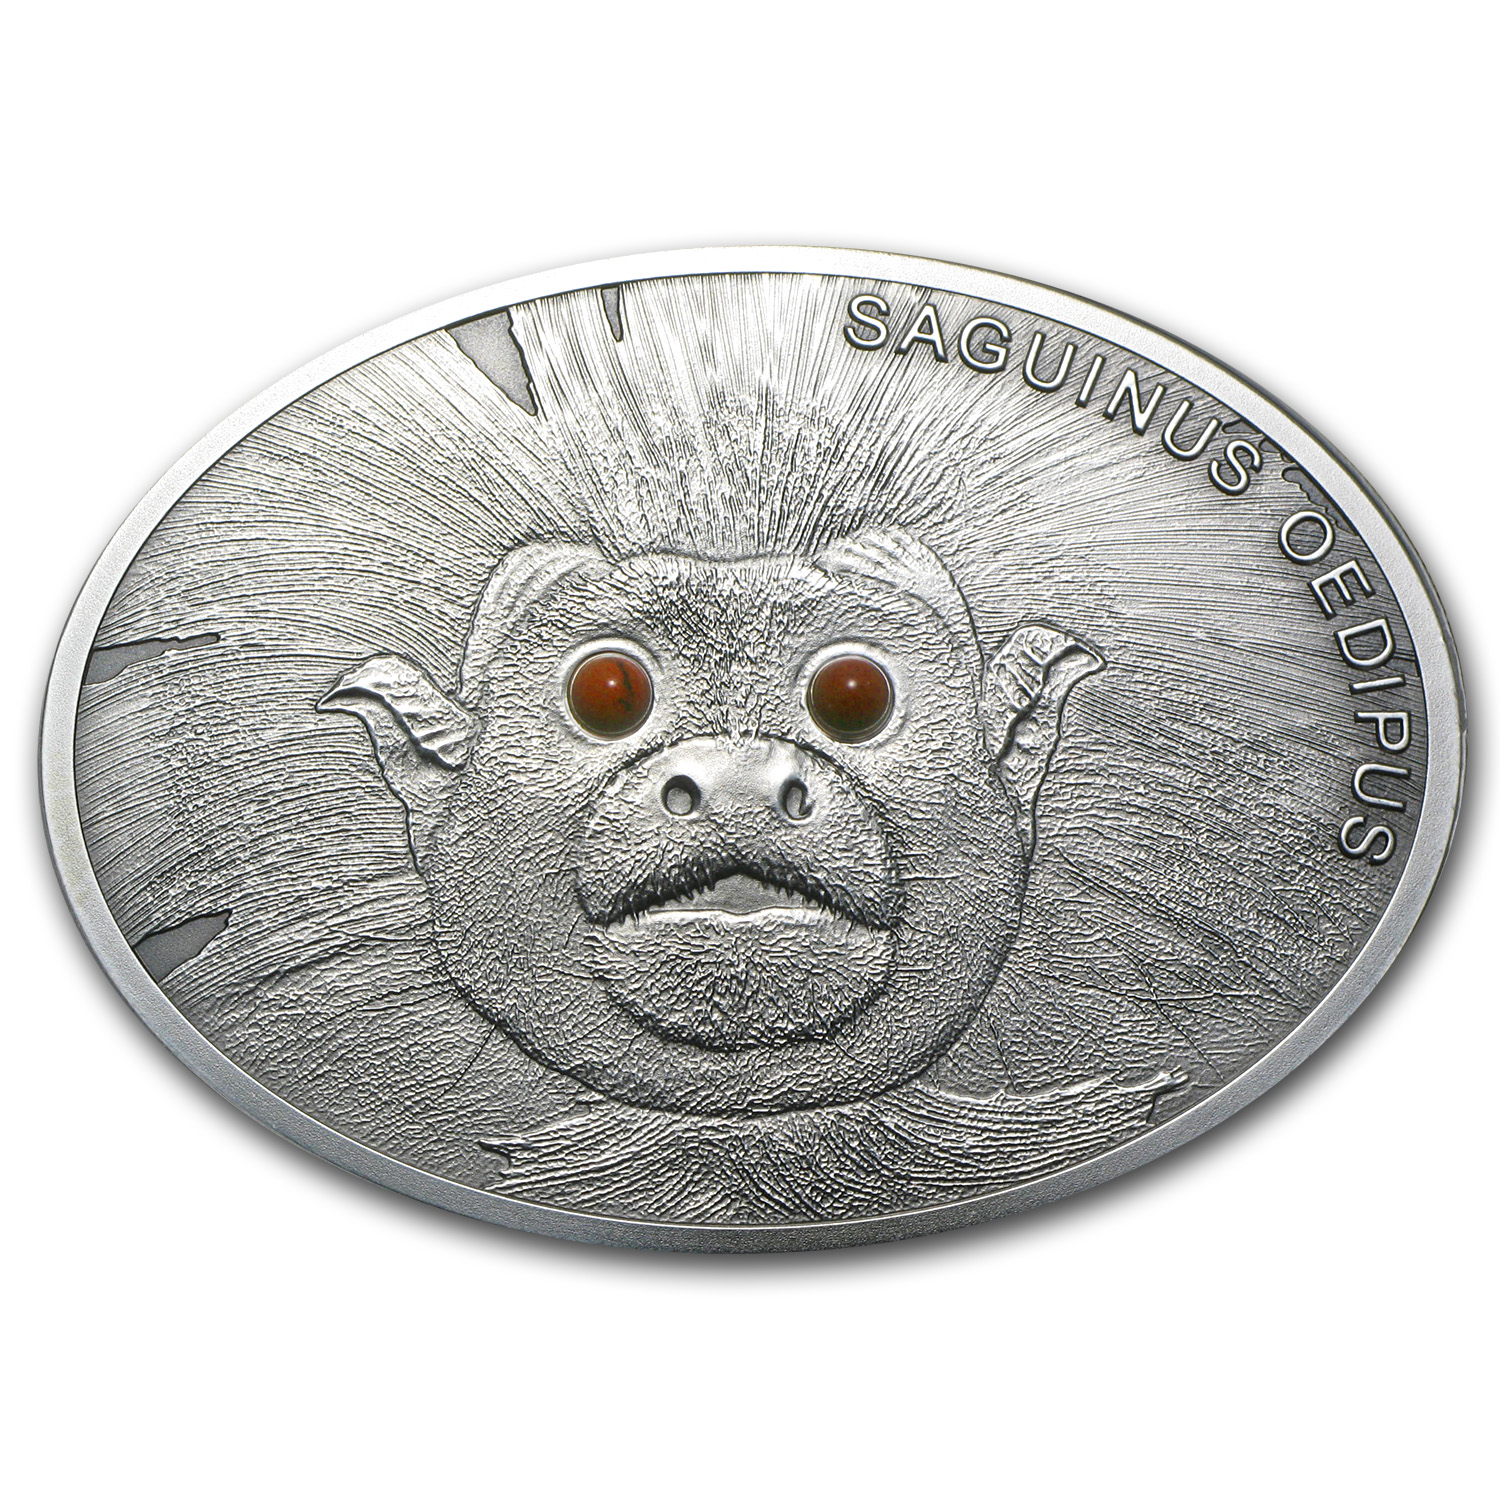 2013 Fiji 1 oz Silver $10 Fascinating Wildlife CottonTop Tamarin